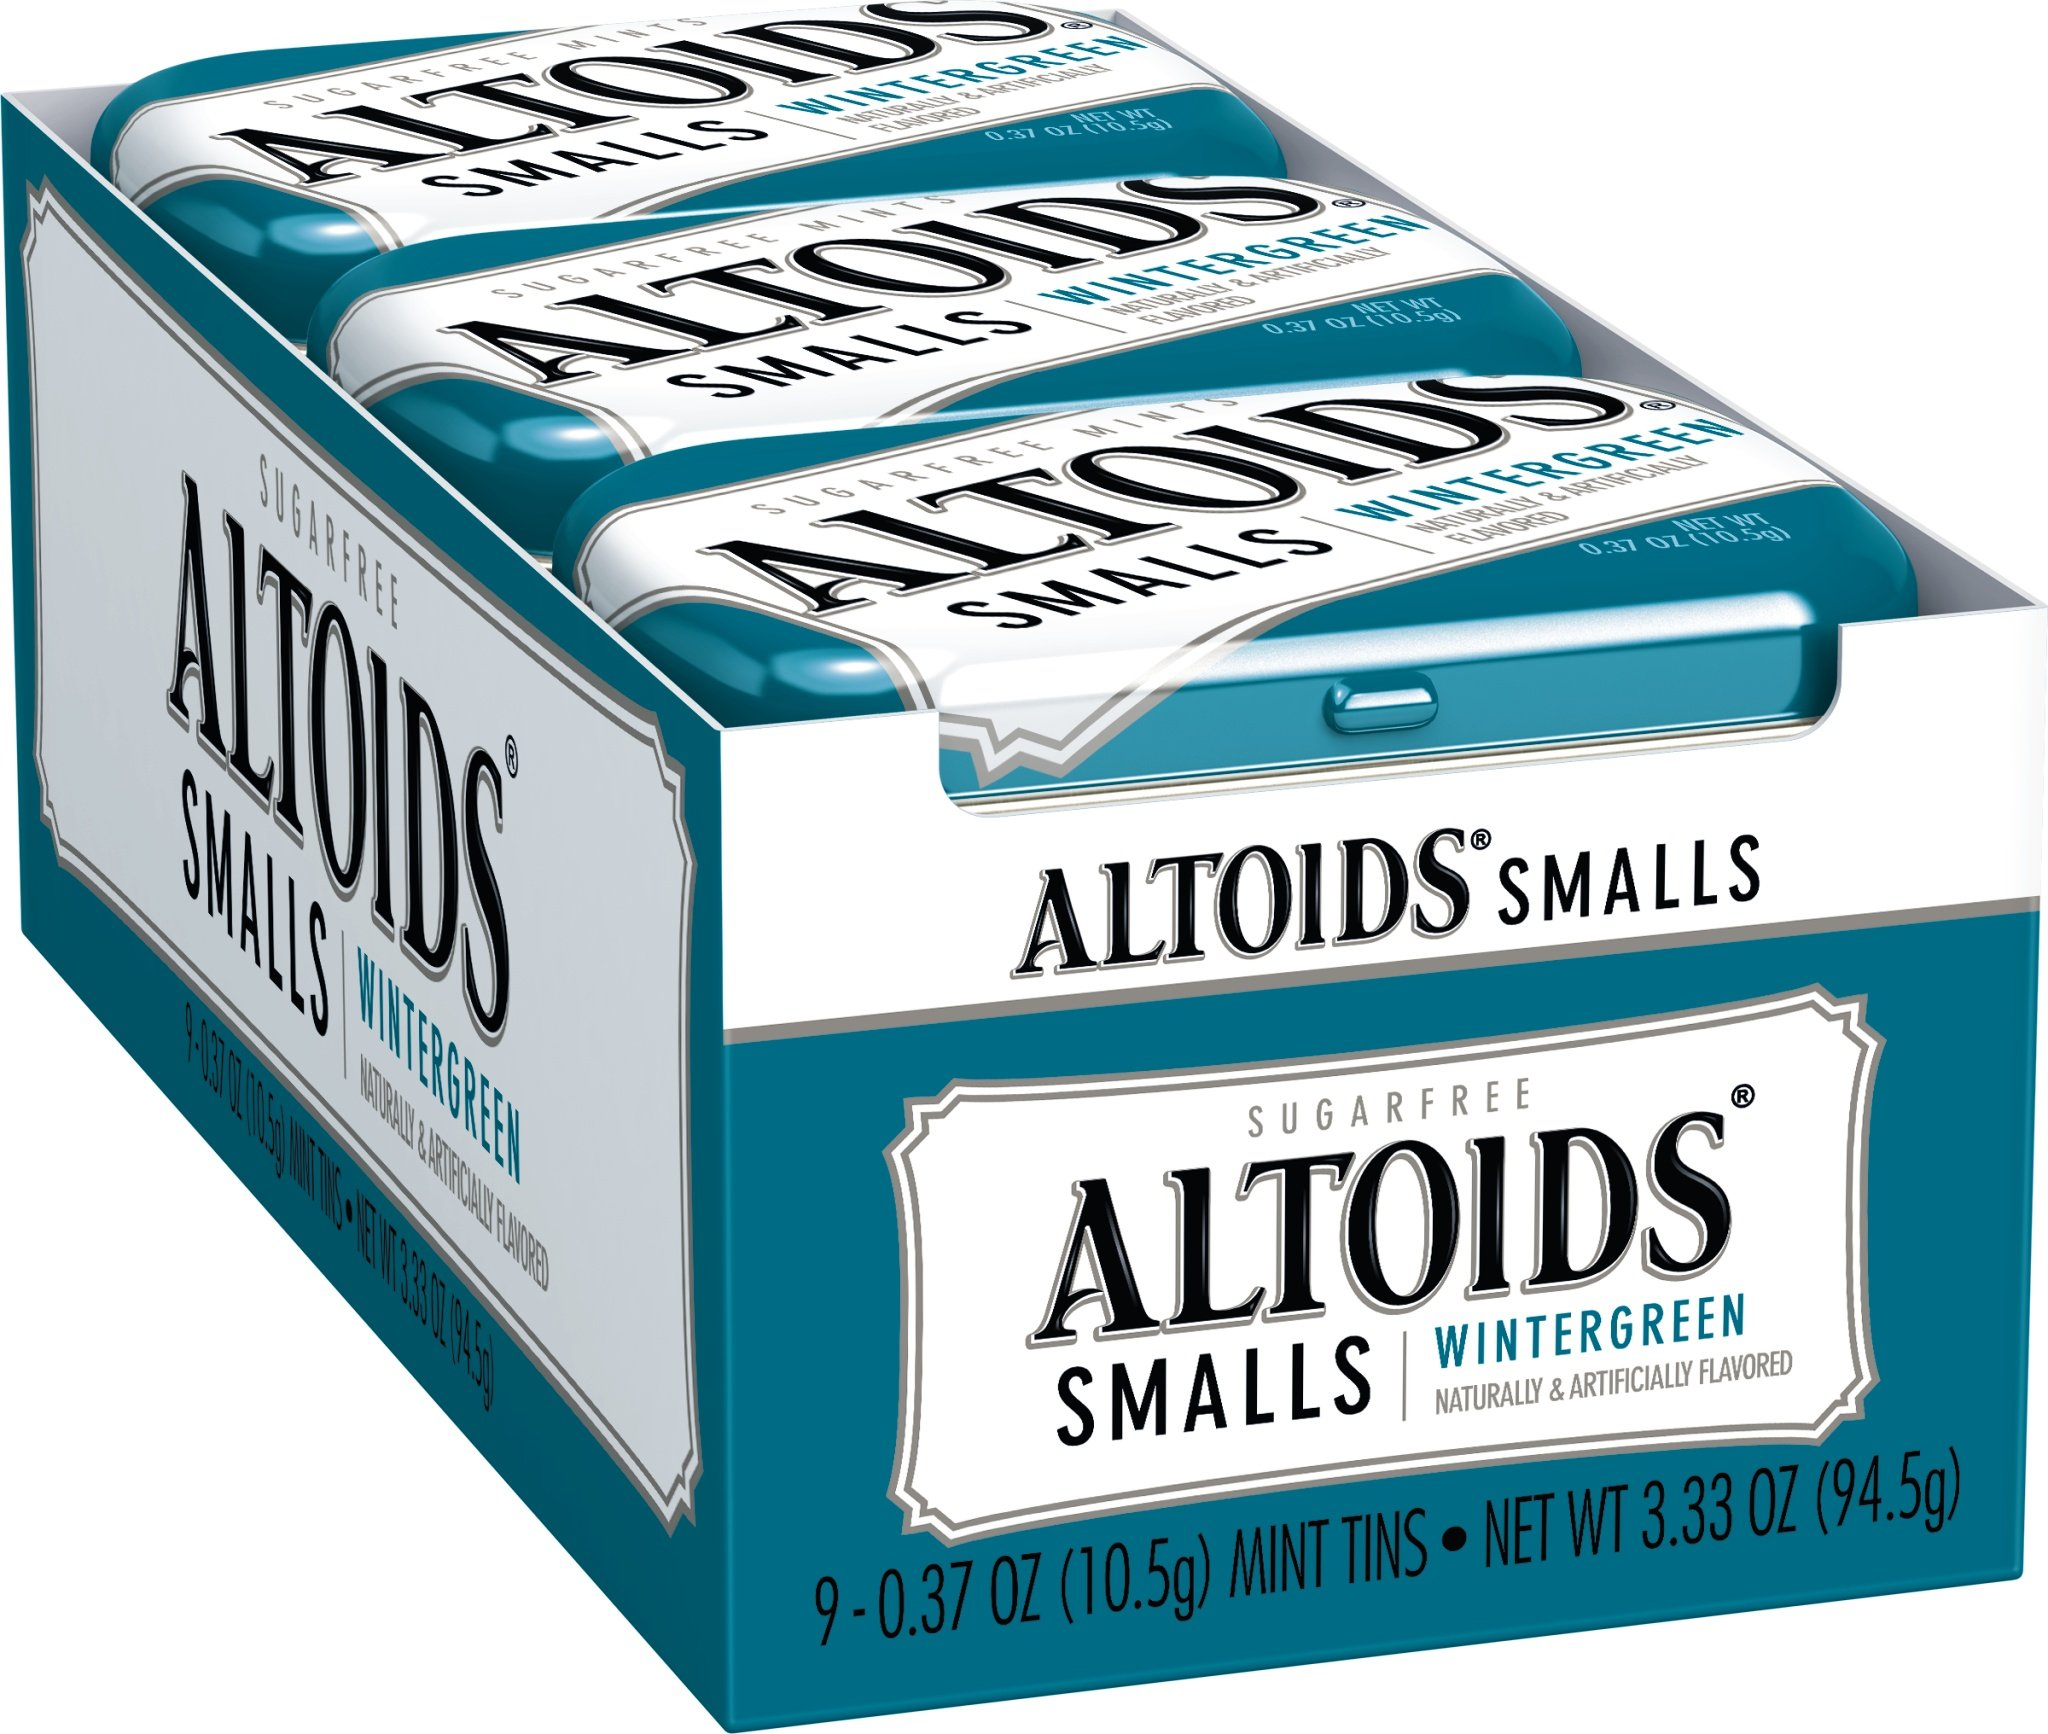 Altoids Smalls Sugar Free Wintergreen Mints, 0.37-Ounce Tins (2 Packs of 9)